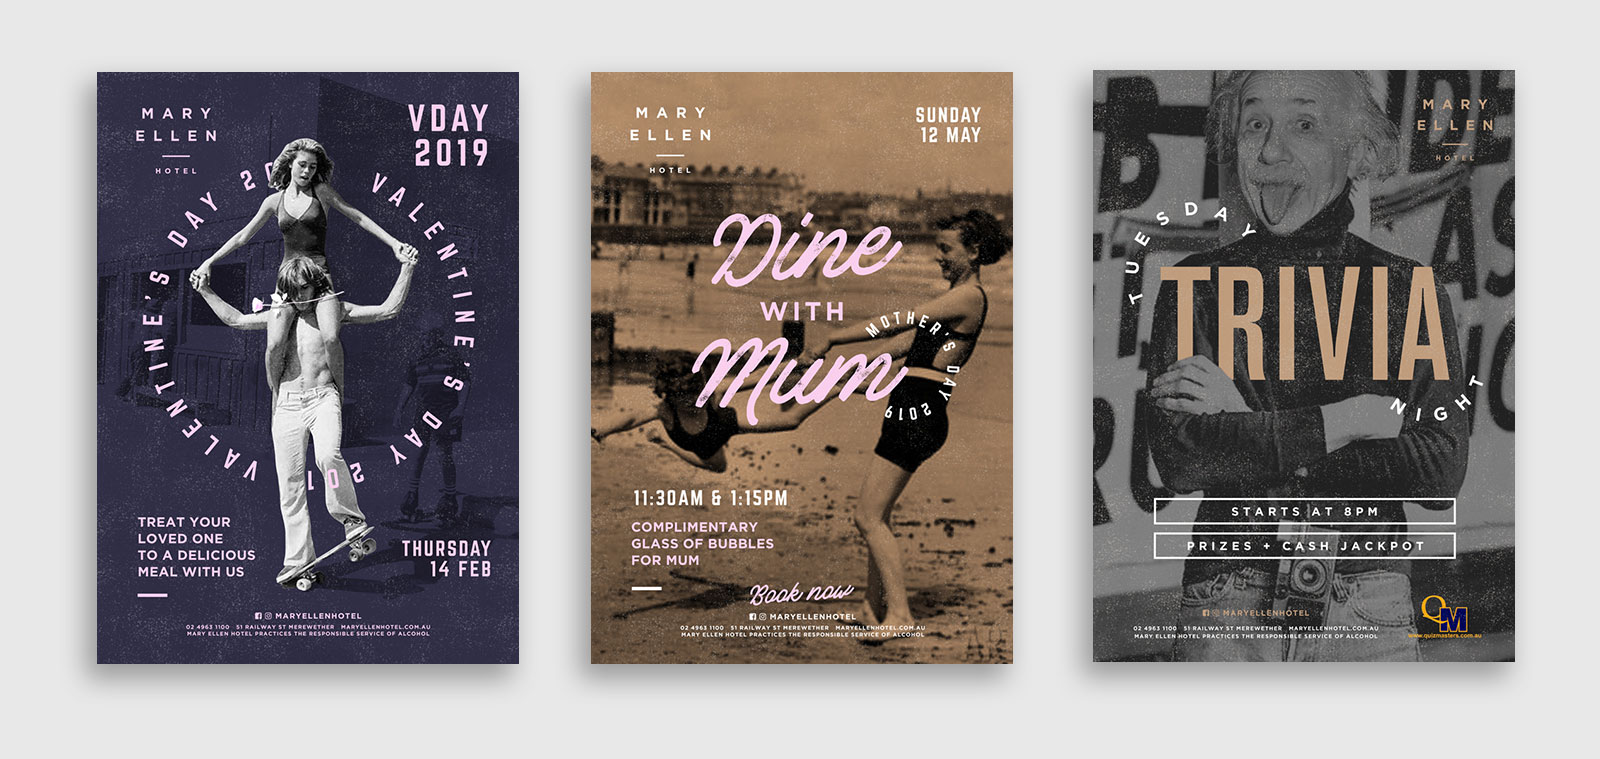 Three poster designs for Mary Ellen Hotel